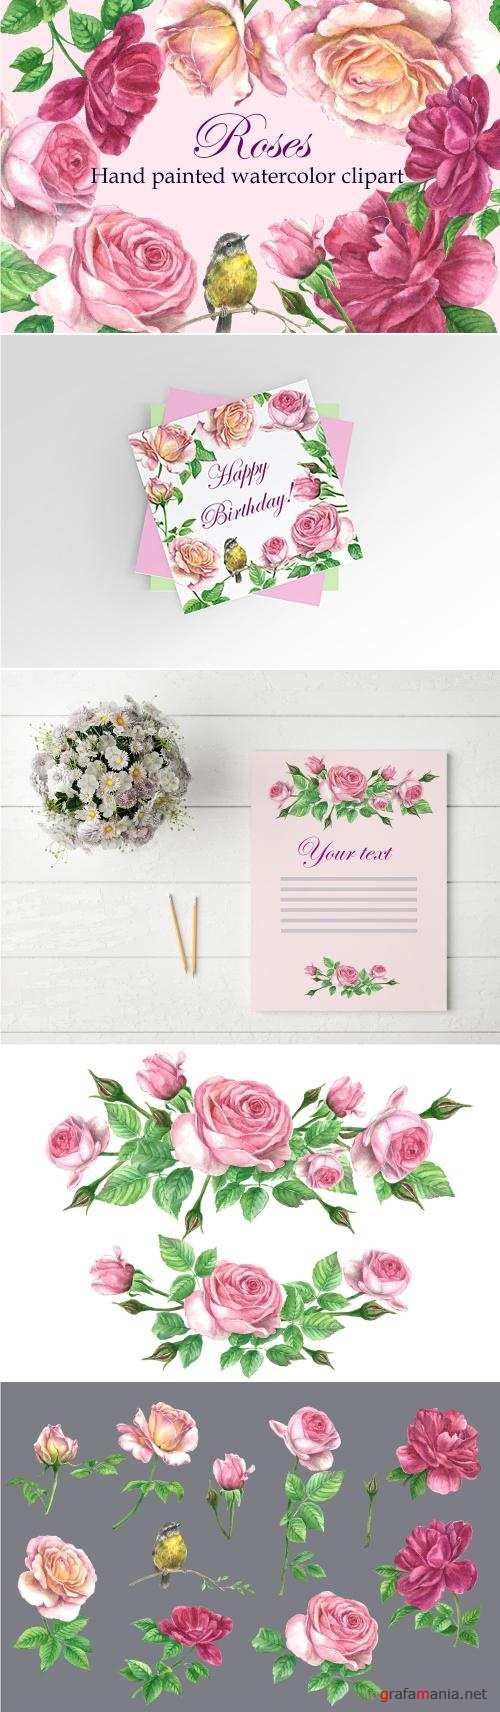 Roses@Bird Watercolor Clipart - 2516675